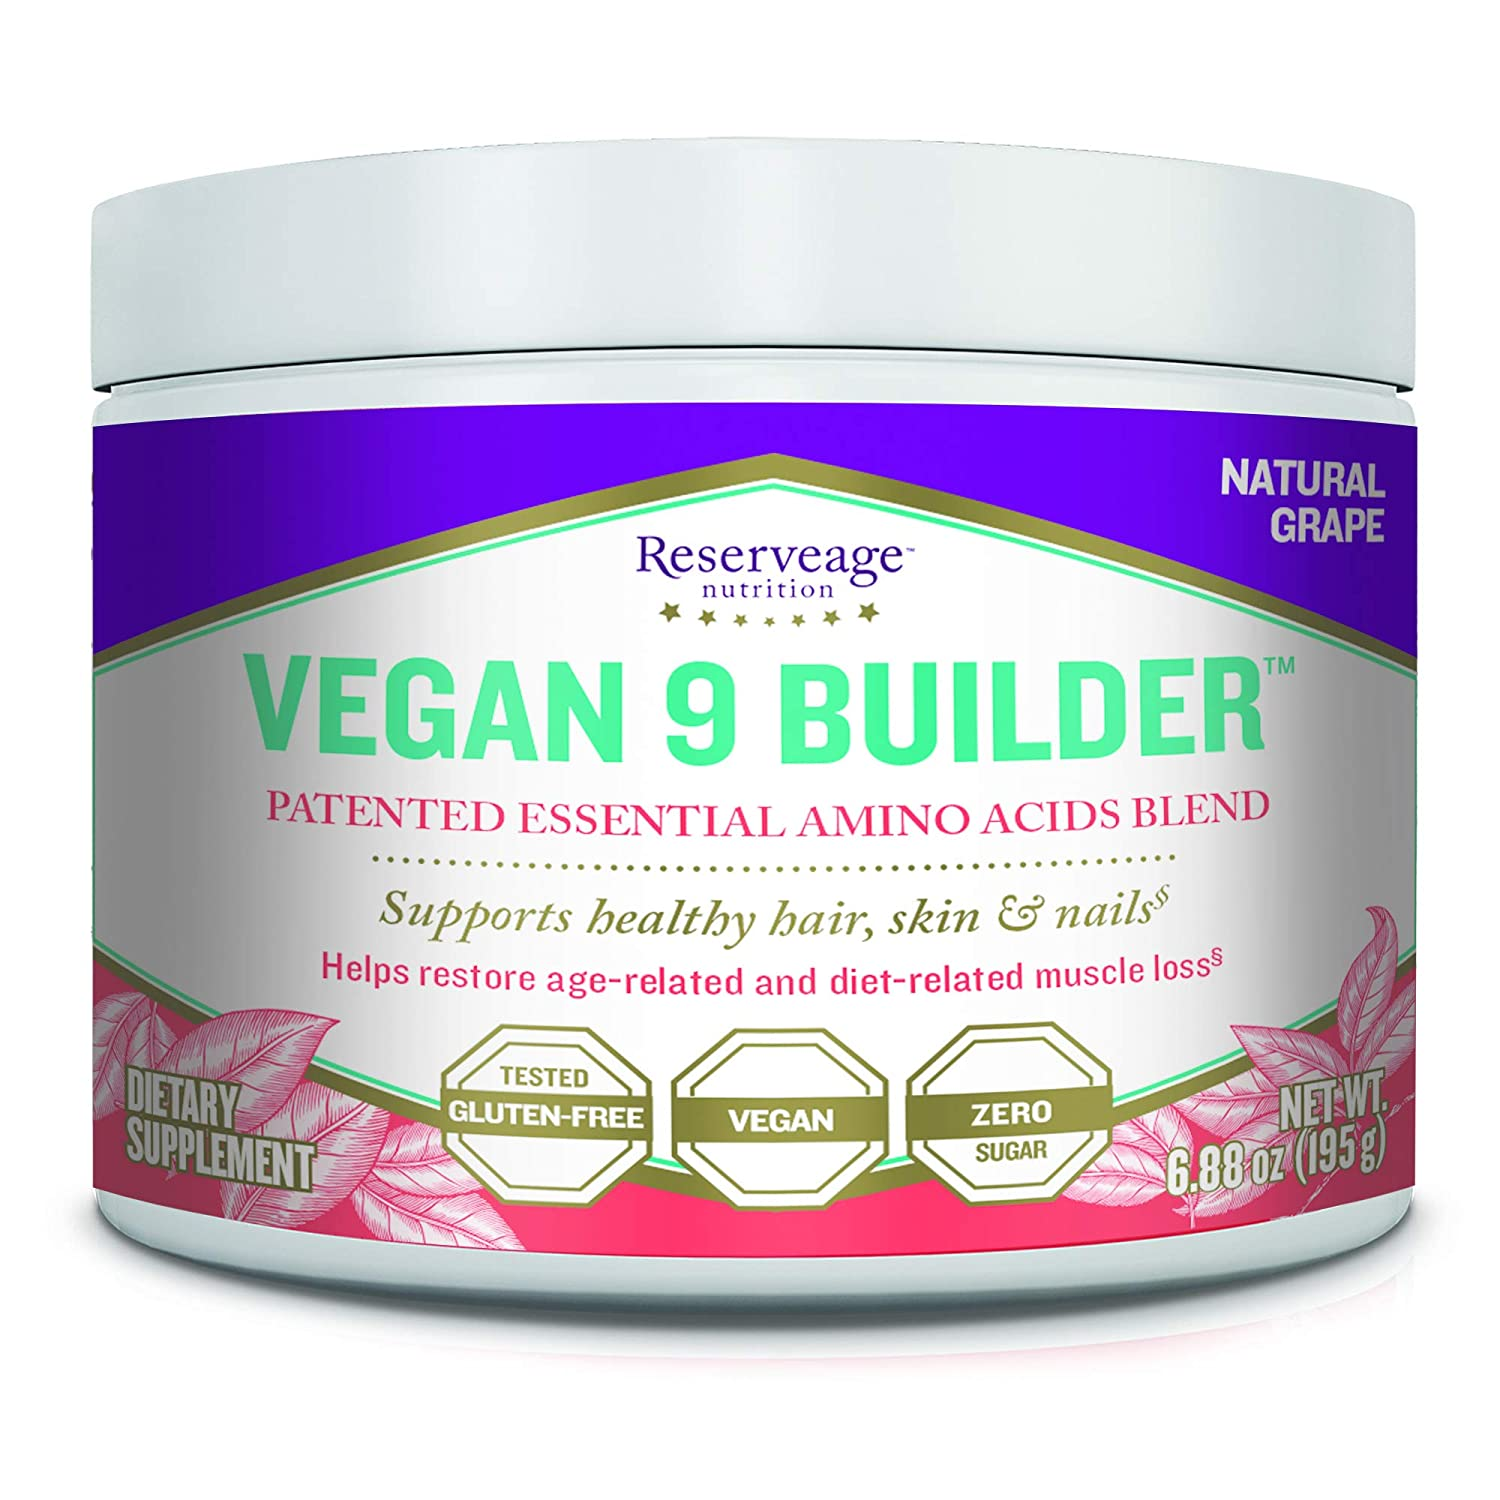 Reserveage, Vegan 9 Builder, Essential Amino Acids Blend to Support Healthy Hair, Skin and Nails, 6.88 oz 30 servings , Natural Grape Powder